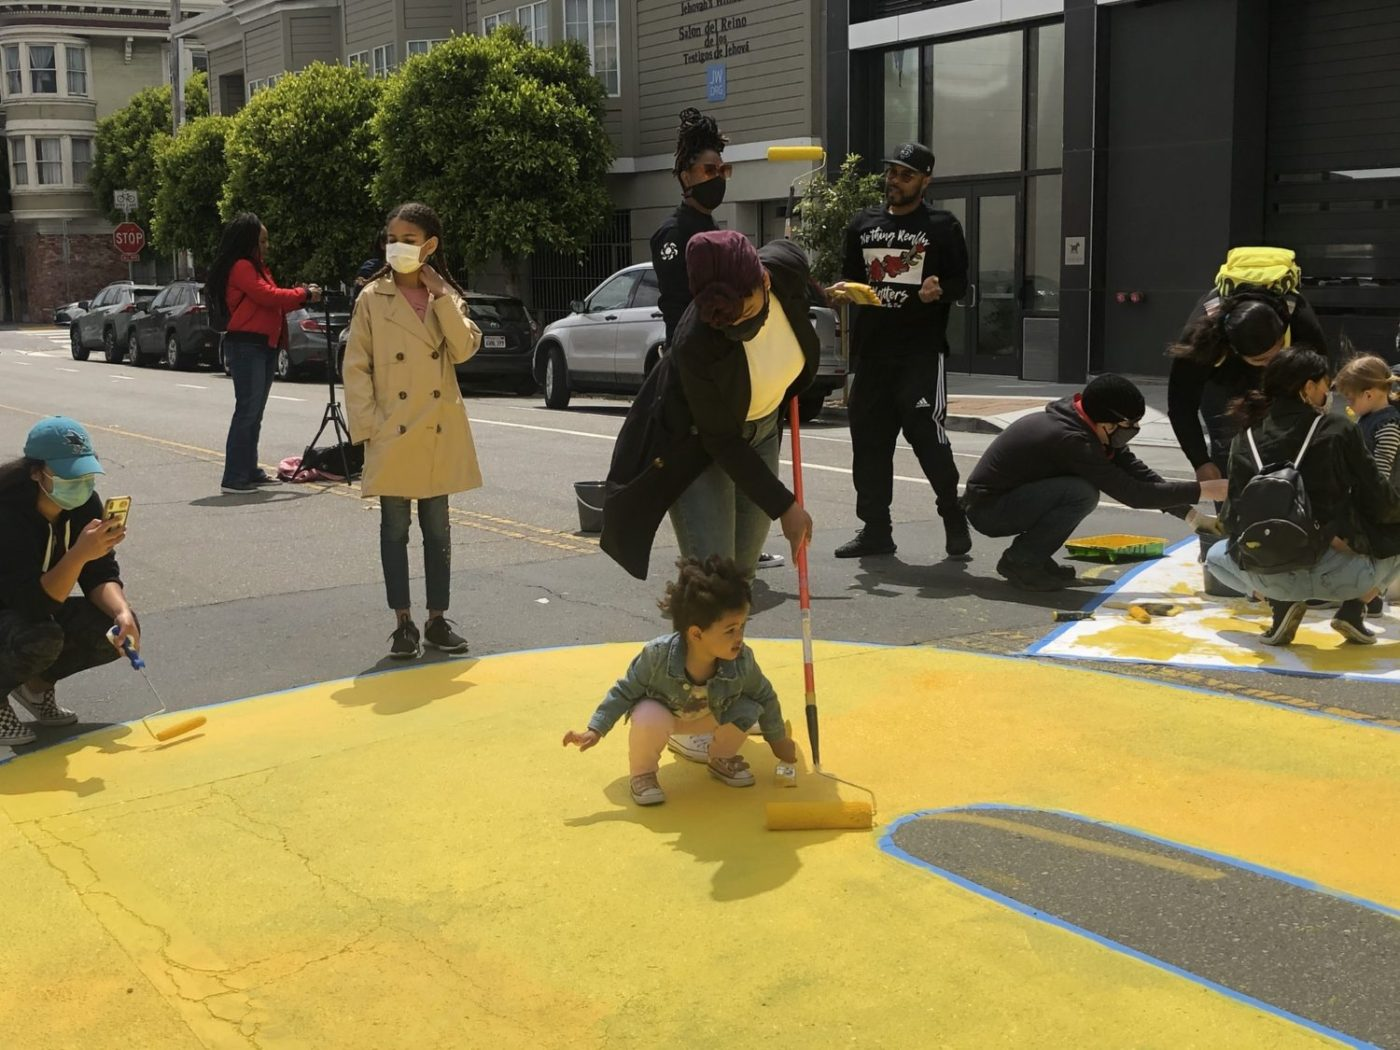 Melonie-Melorra-Green-Project-Level-lead-'Black-Lives-Matter'-700-block-Fulton-street-painting-061220-4-by-Meaghan-Mitchell-Hoodline-1400x1050, 100+ volunteers paint 'Black Lives Matter' in center of San Francisco street, Local News & Views